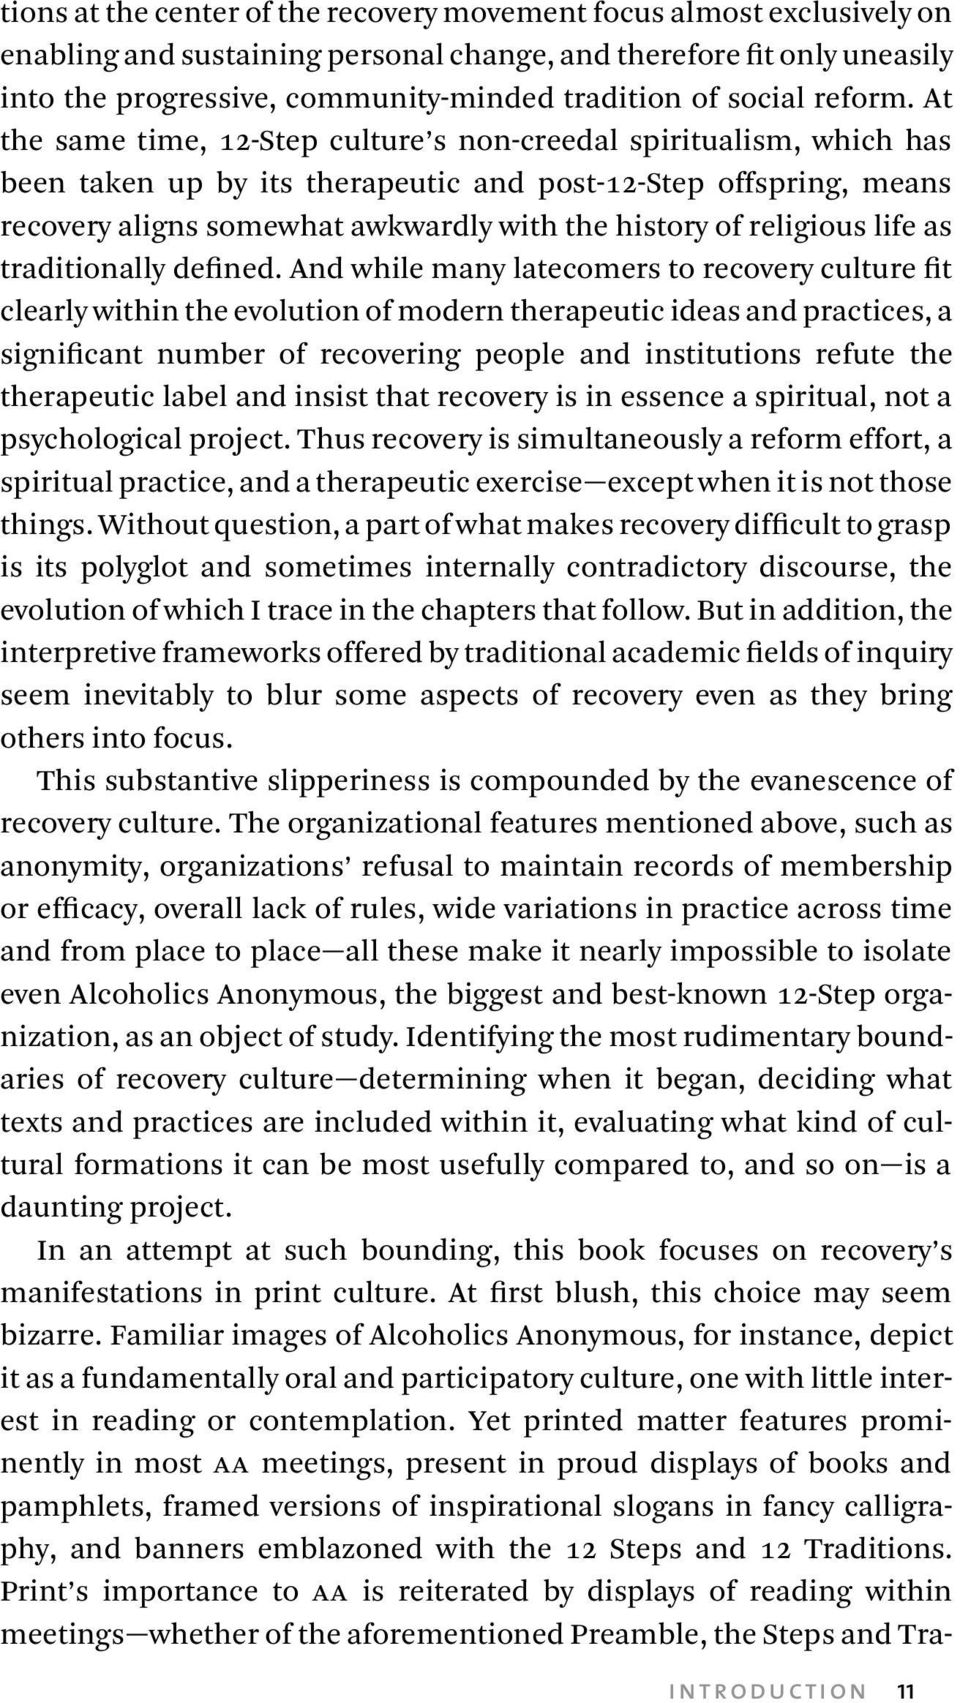 At the same time, 12-Step culture s non-creedal spiritualism, which has been taken up by its therapeutic and post-12-step offspring, means recovery aligns somewhat awkwardly with the history of